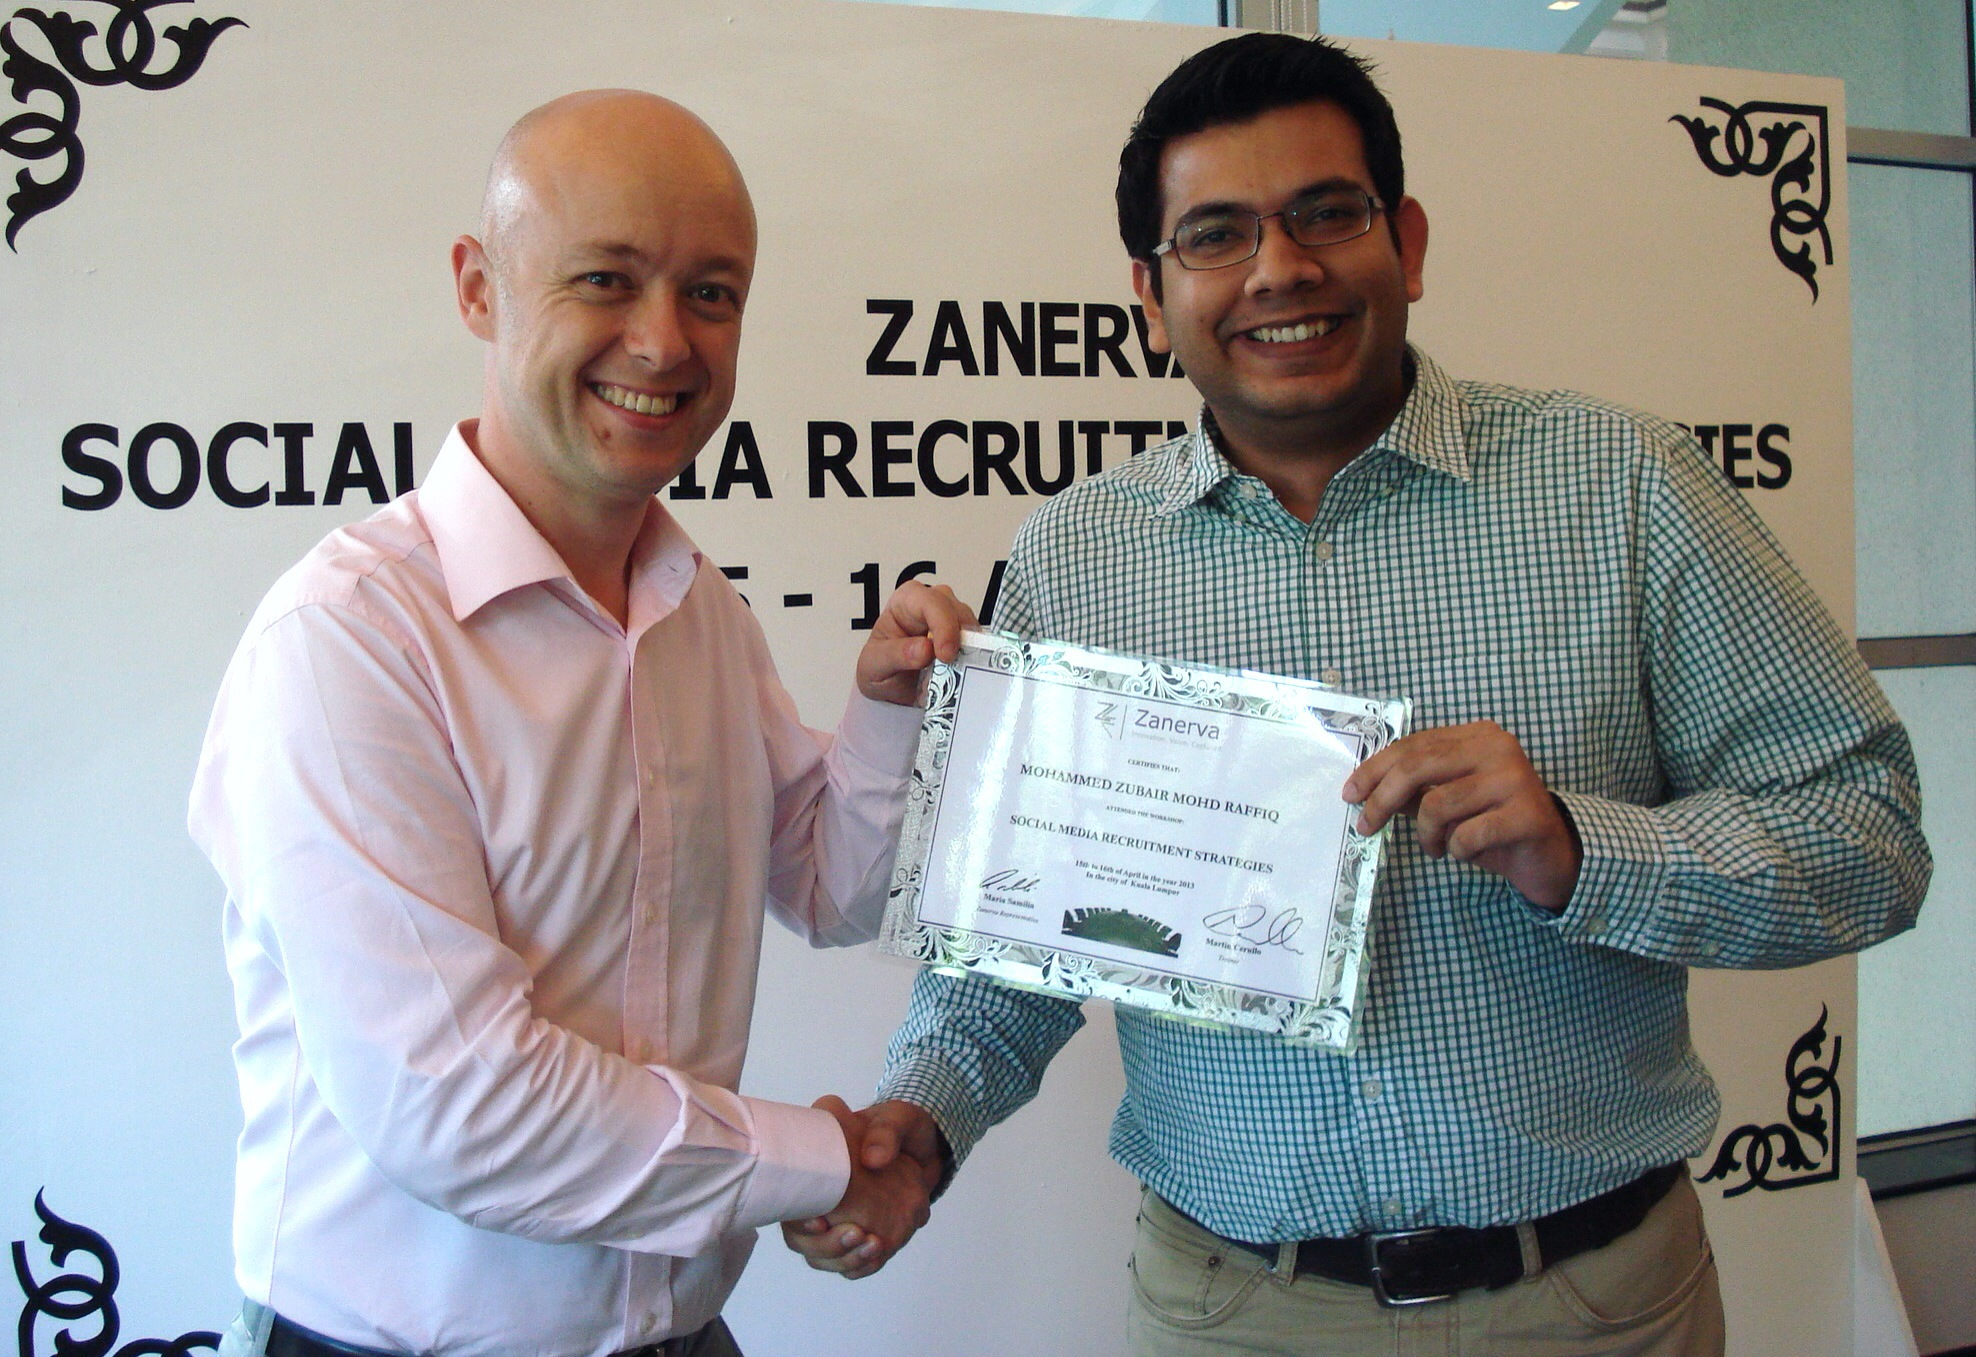 Mohammed Zubair Mohd Raffiq, Sourcing & Learning Manager at British American Tobacco Malaysia  receiving his certificate of participation for attending the Social Media Recruitment Strategies Workshop